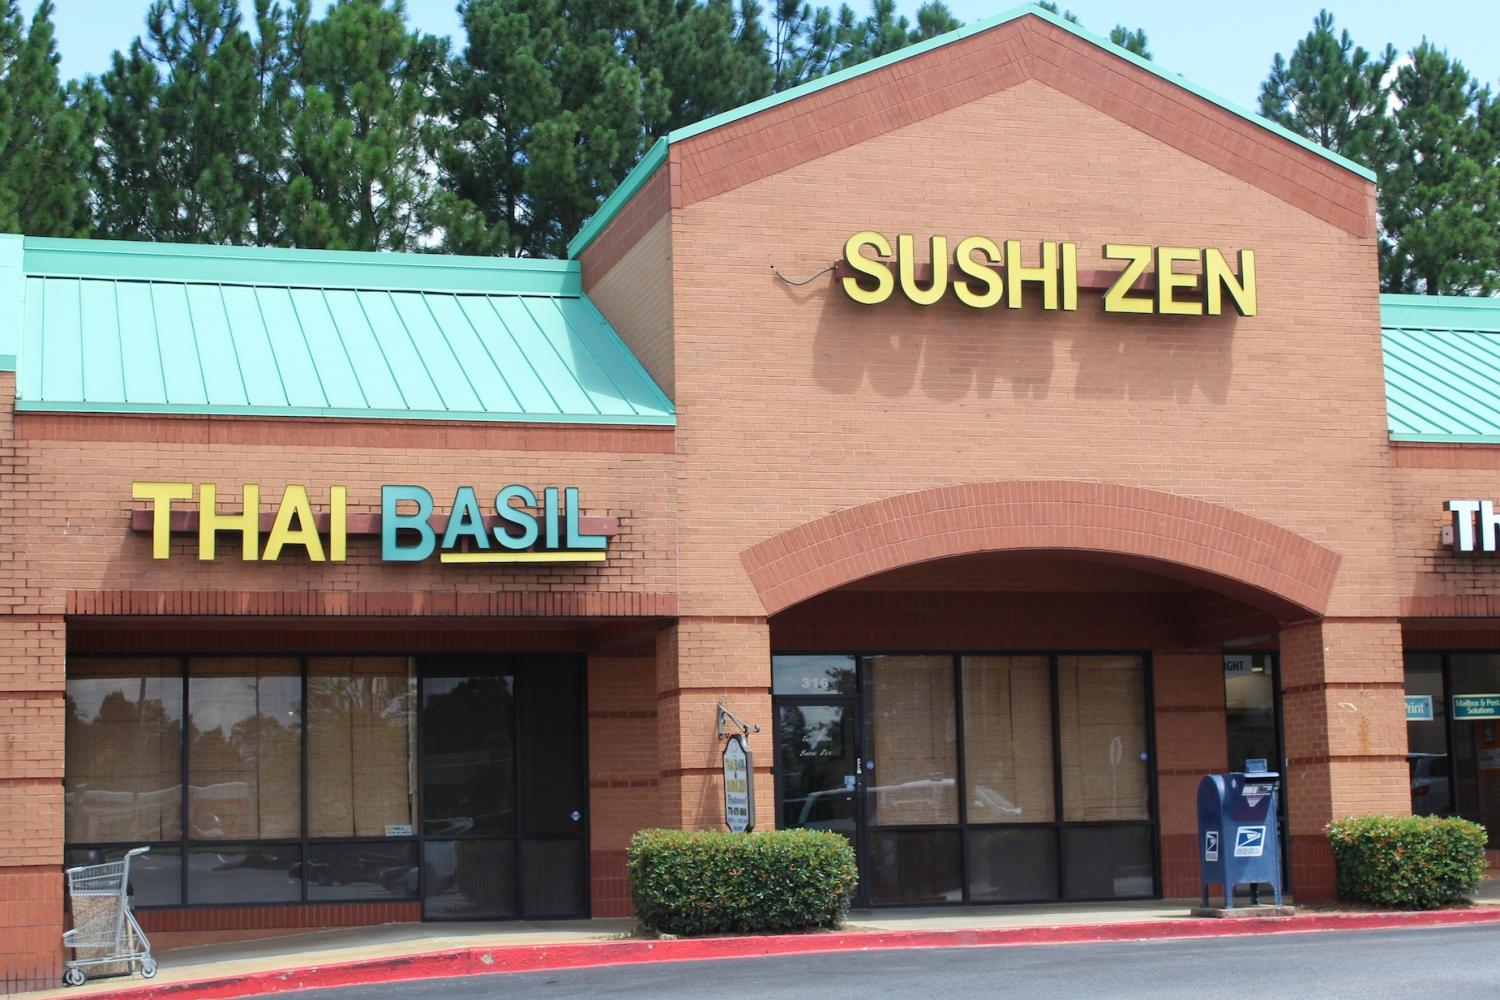 Thai+Basil+and+Sushi+Zen%2C+located+in+the+Kennesaw%2FAcworth+area%2C+proves+itself+as+one+of+the+most+popular+places+for+sushi+lovers.+